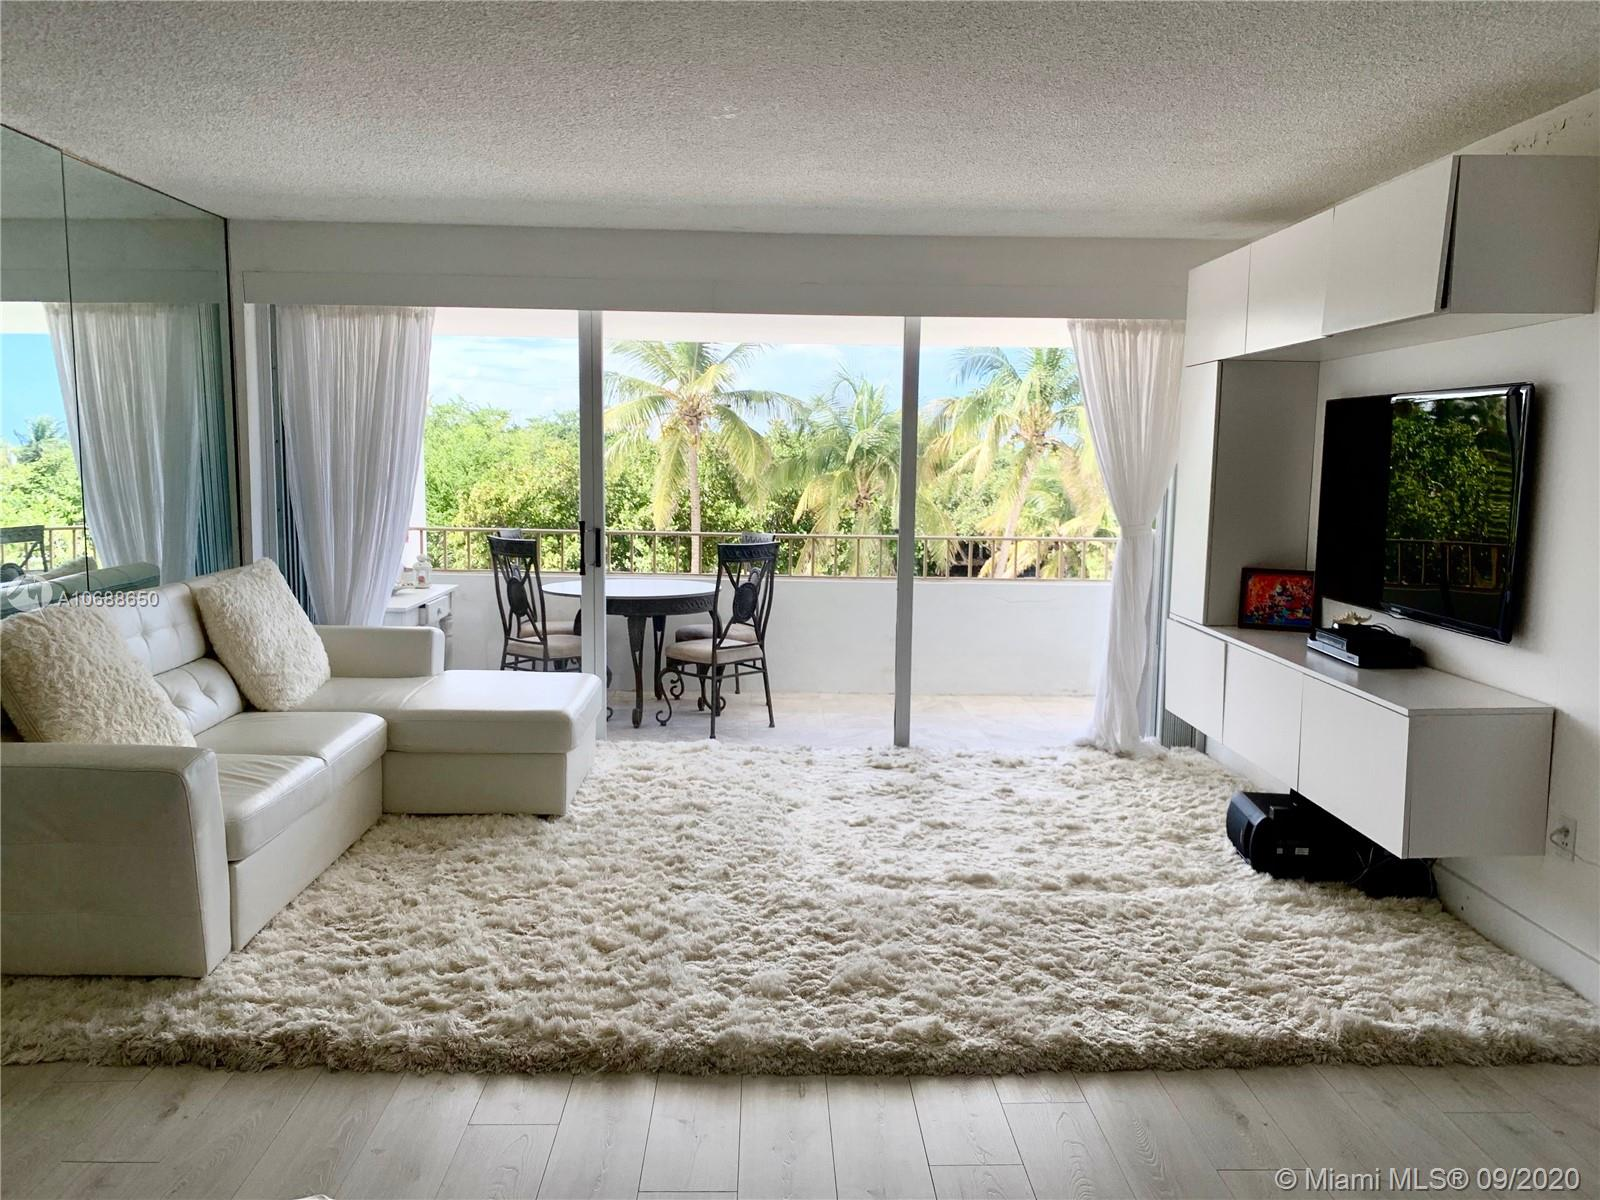 177 Ocean Lane Dr, Key Biscayne in Miami-dade County County, FL 33149 Home for Sale